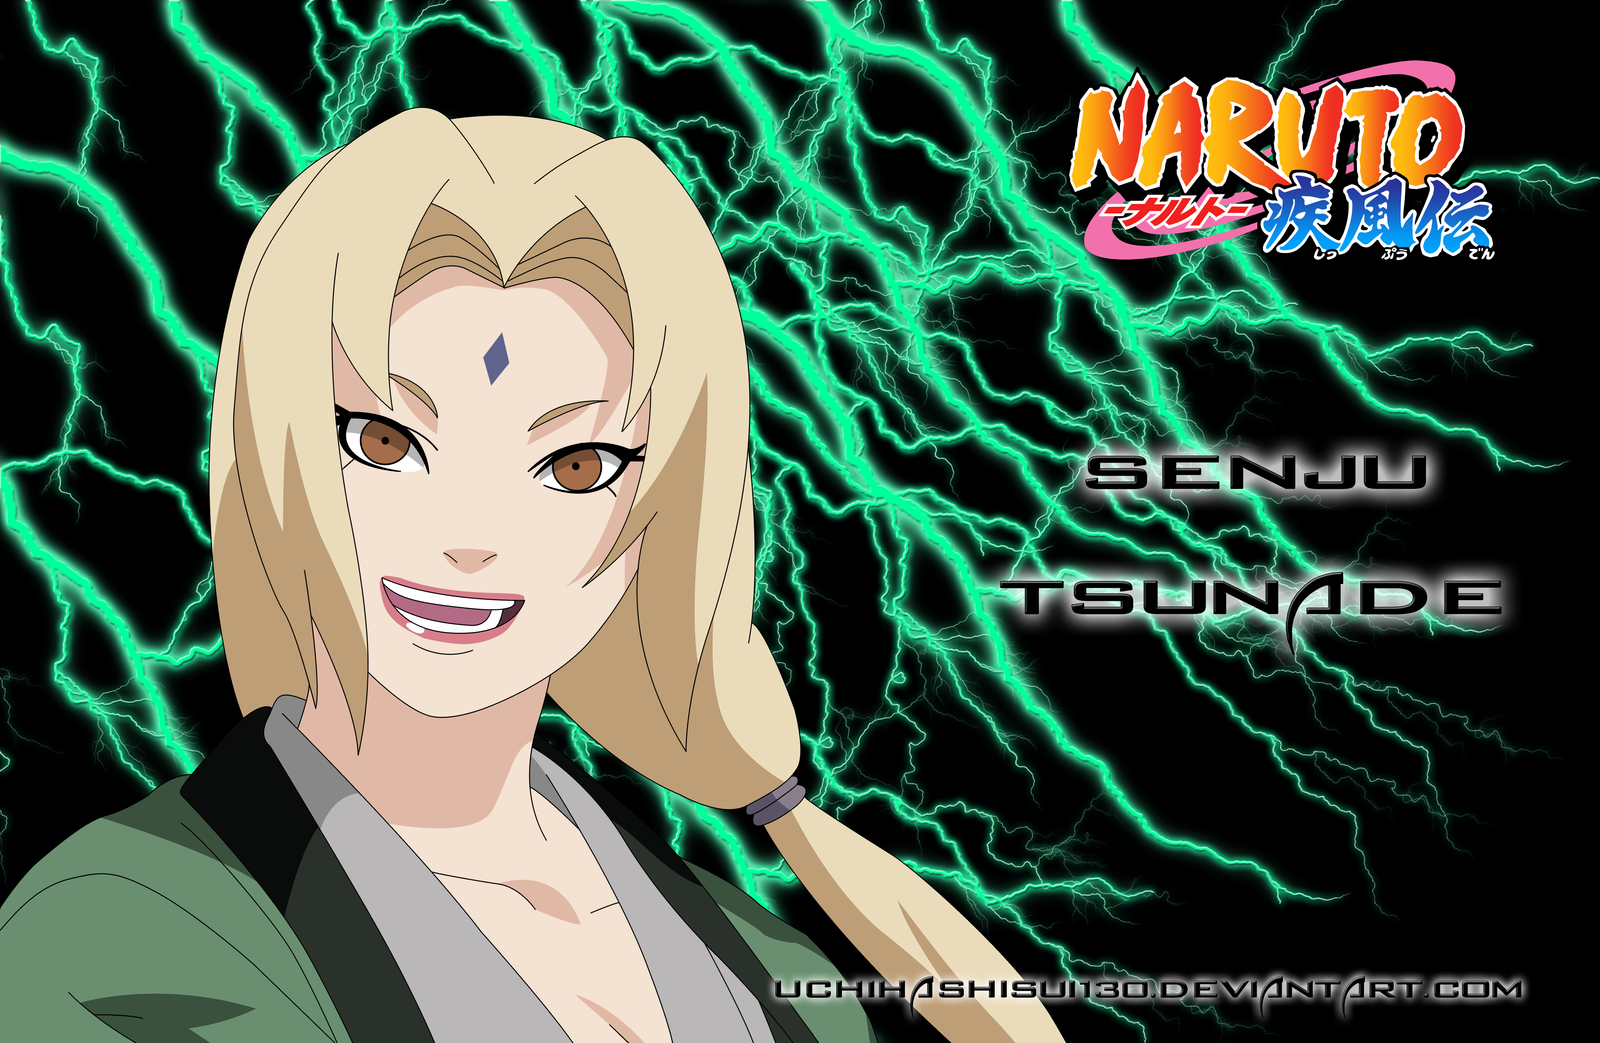 Naruto Tsunade Wallpaper Wallpapersafari